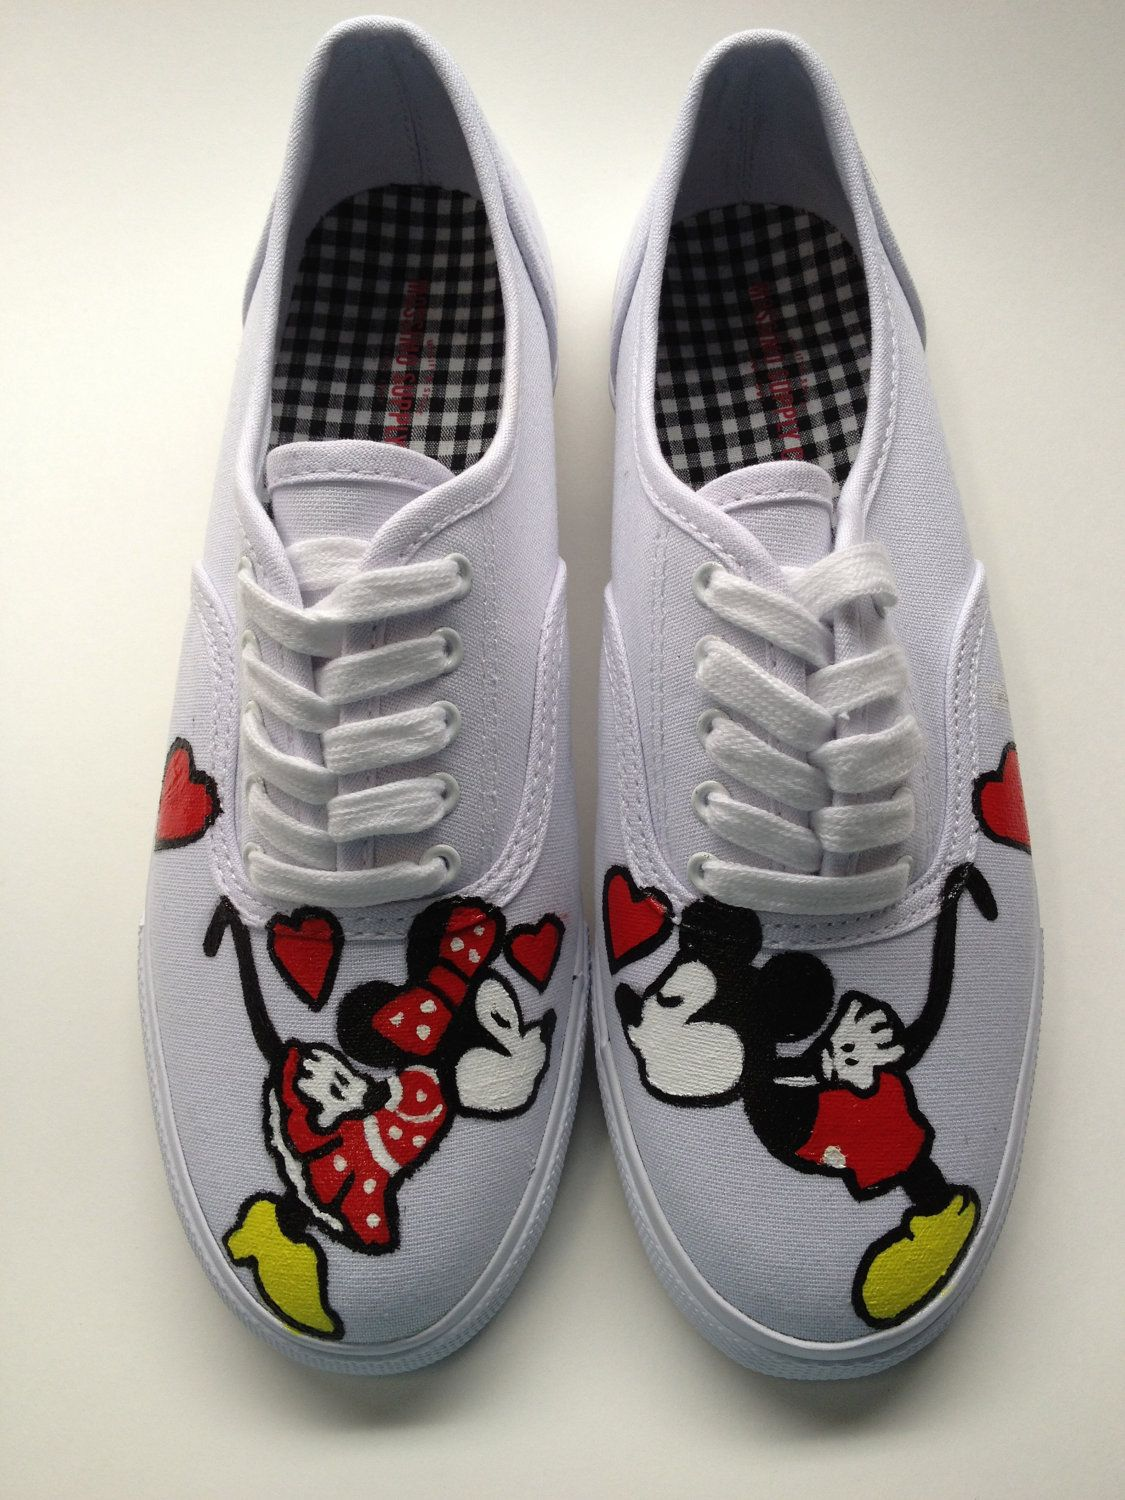 Vans Version Hand Painted Mickey Mouse Minnie Mouse Disney Shoes